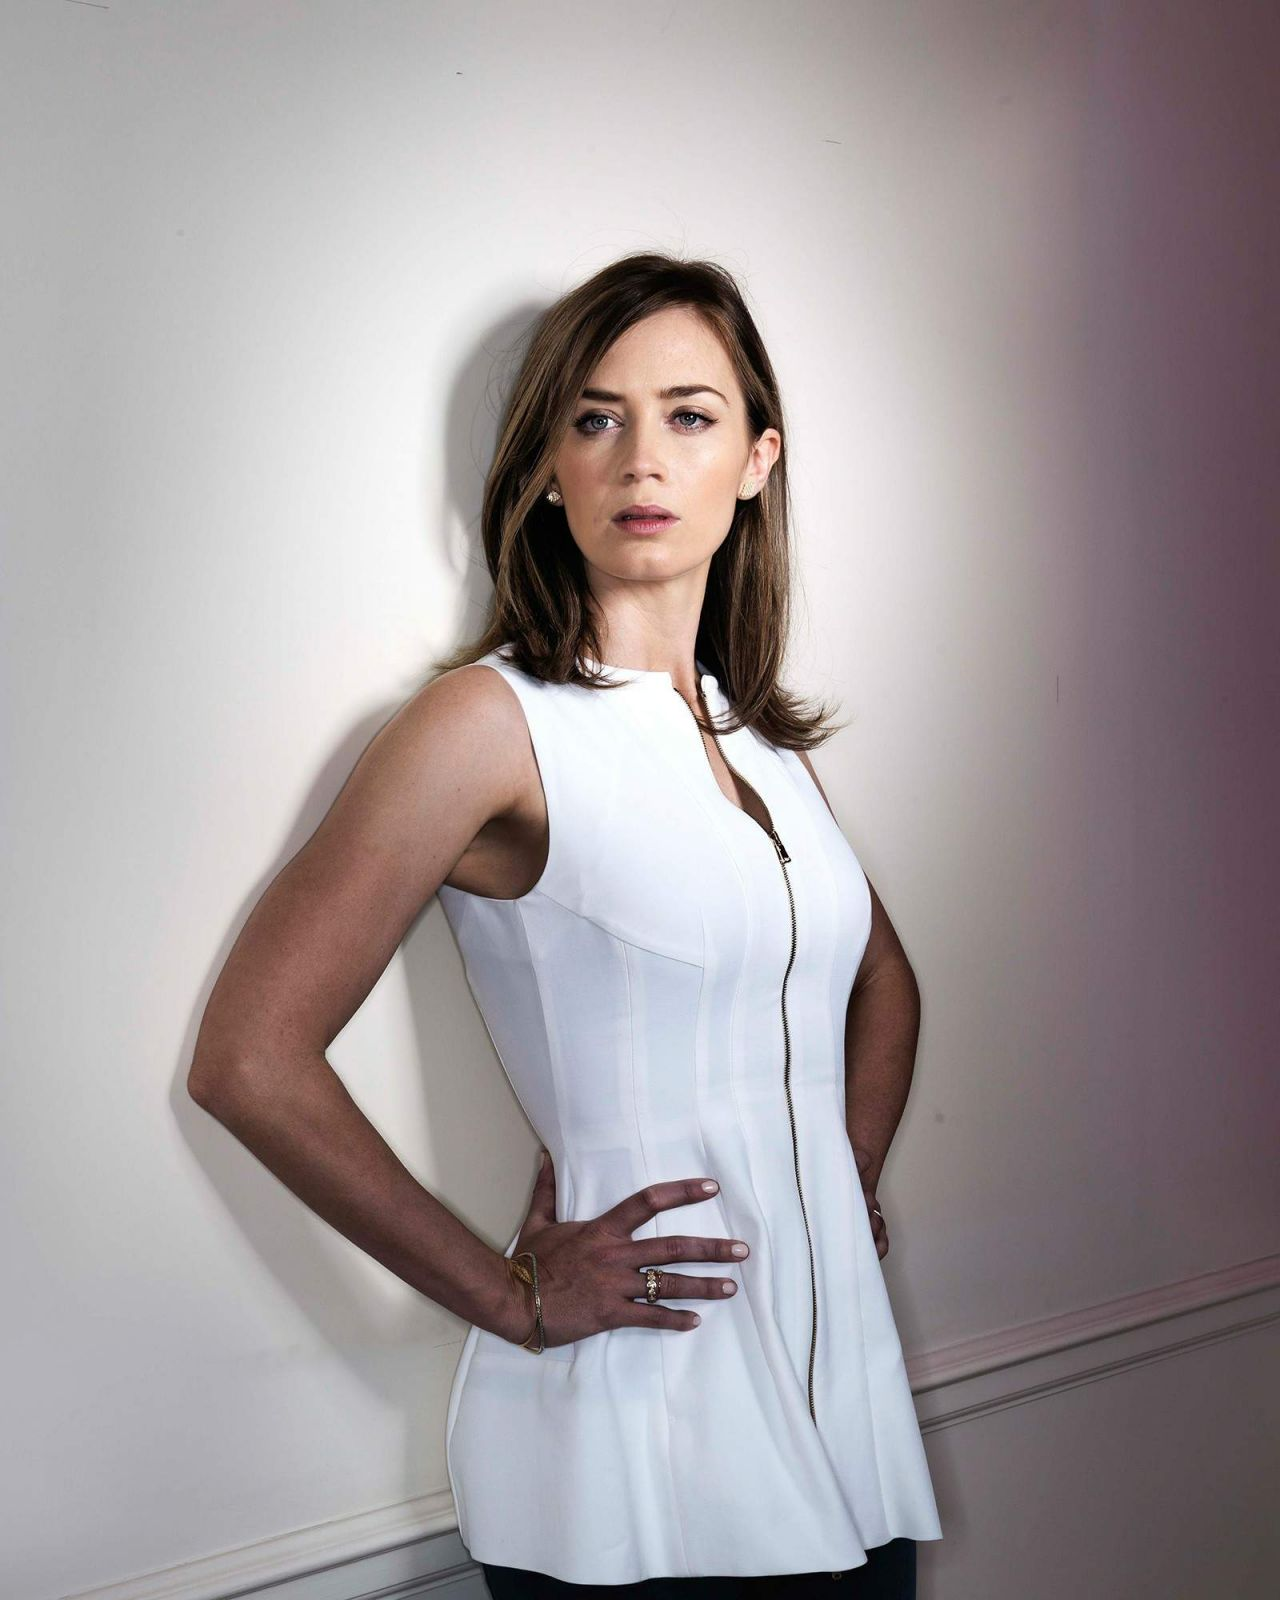 Emily Blunt Photoshoot For Usa Today Magazine 2014